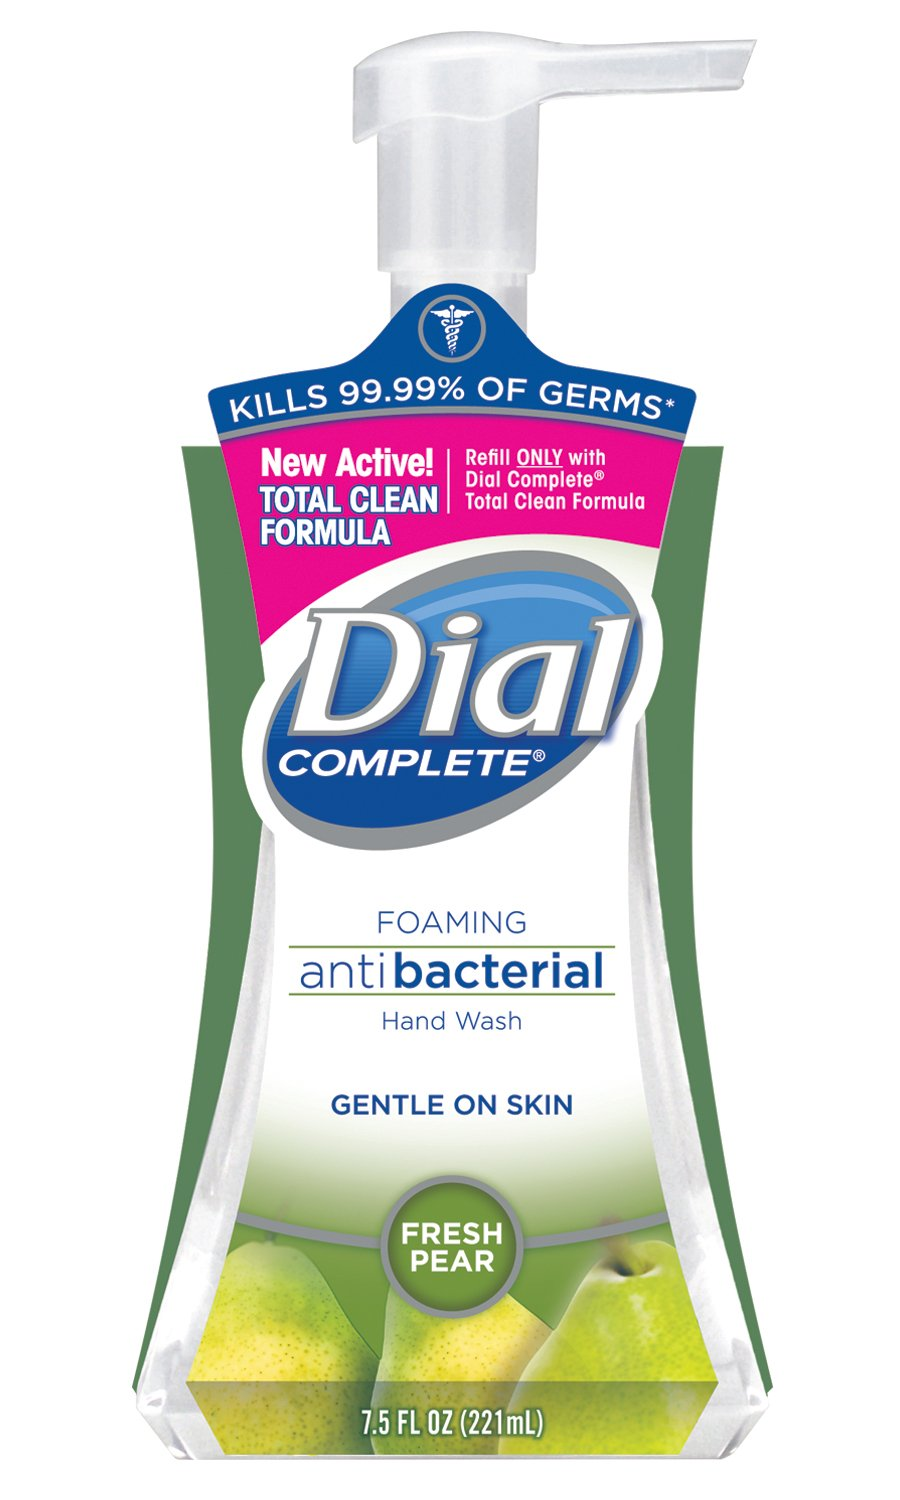 Dial 02934CT Antibacterial Foaming Hand Wash, Fresh Pear, 7.5oz Pump Bottle (Case of 8) by Dial